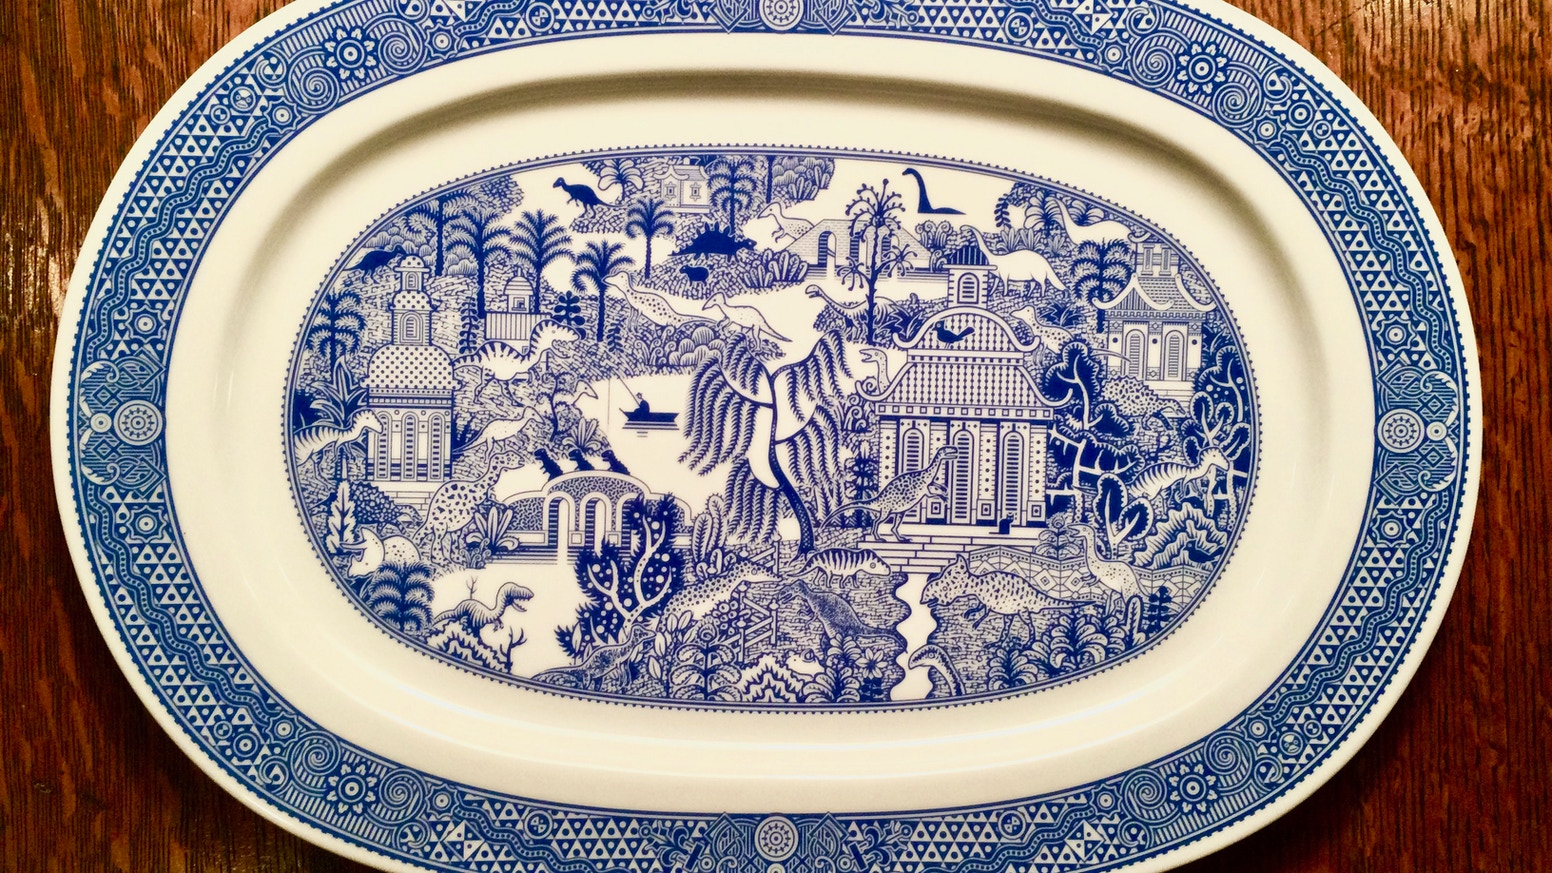 Calamityware Platter: Gang's-All-Here